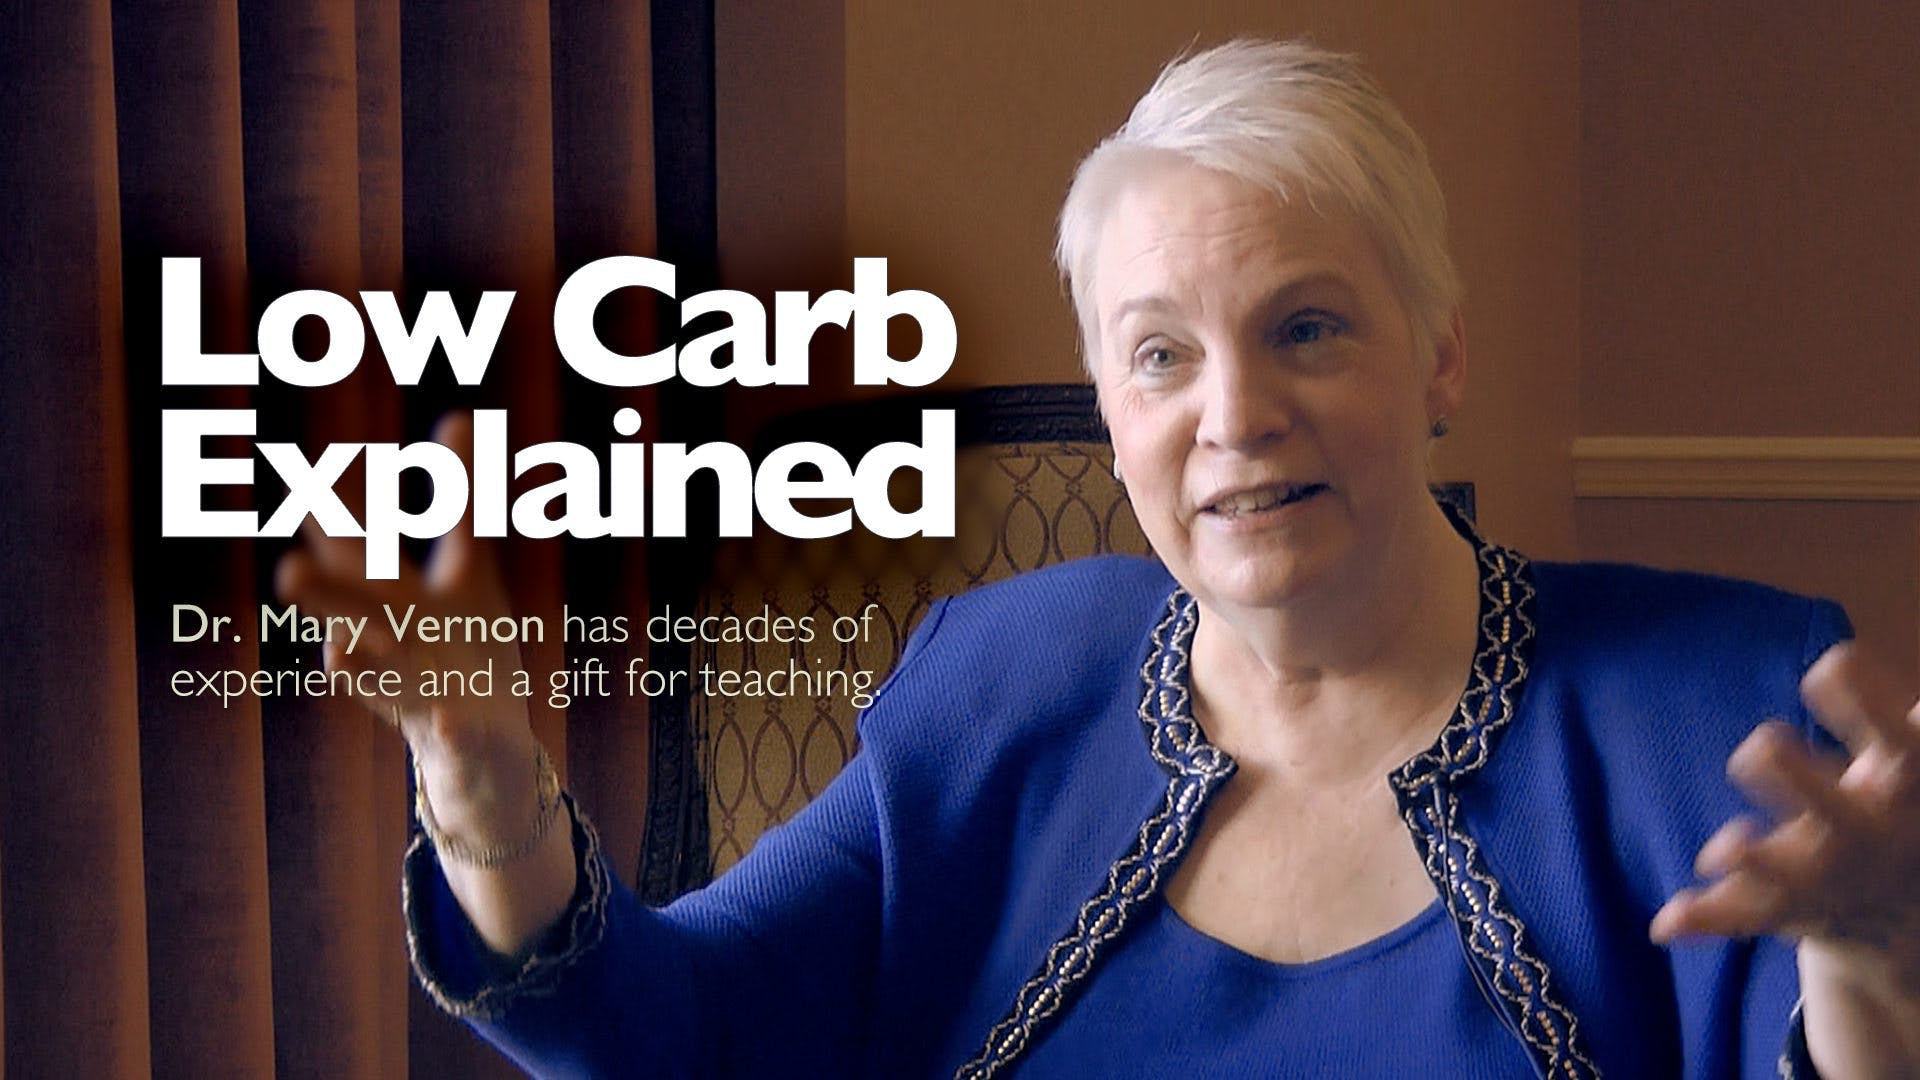 Low carb explained